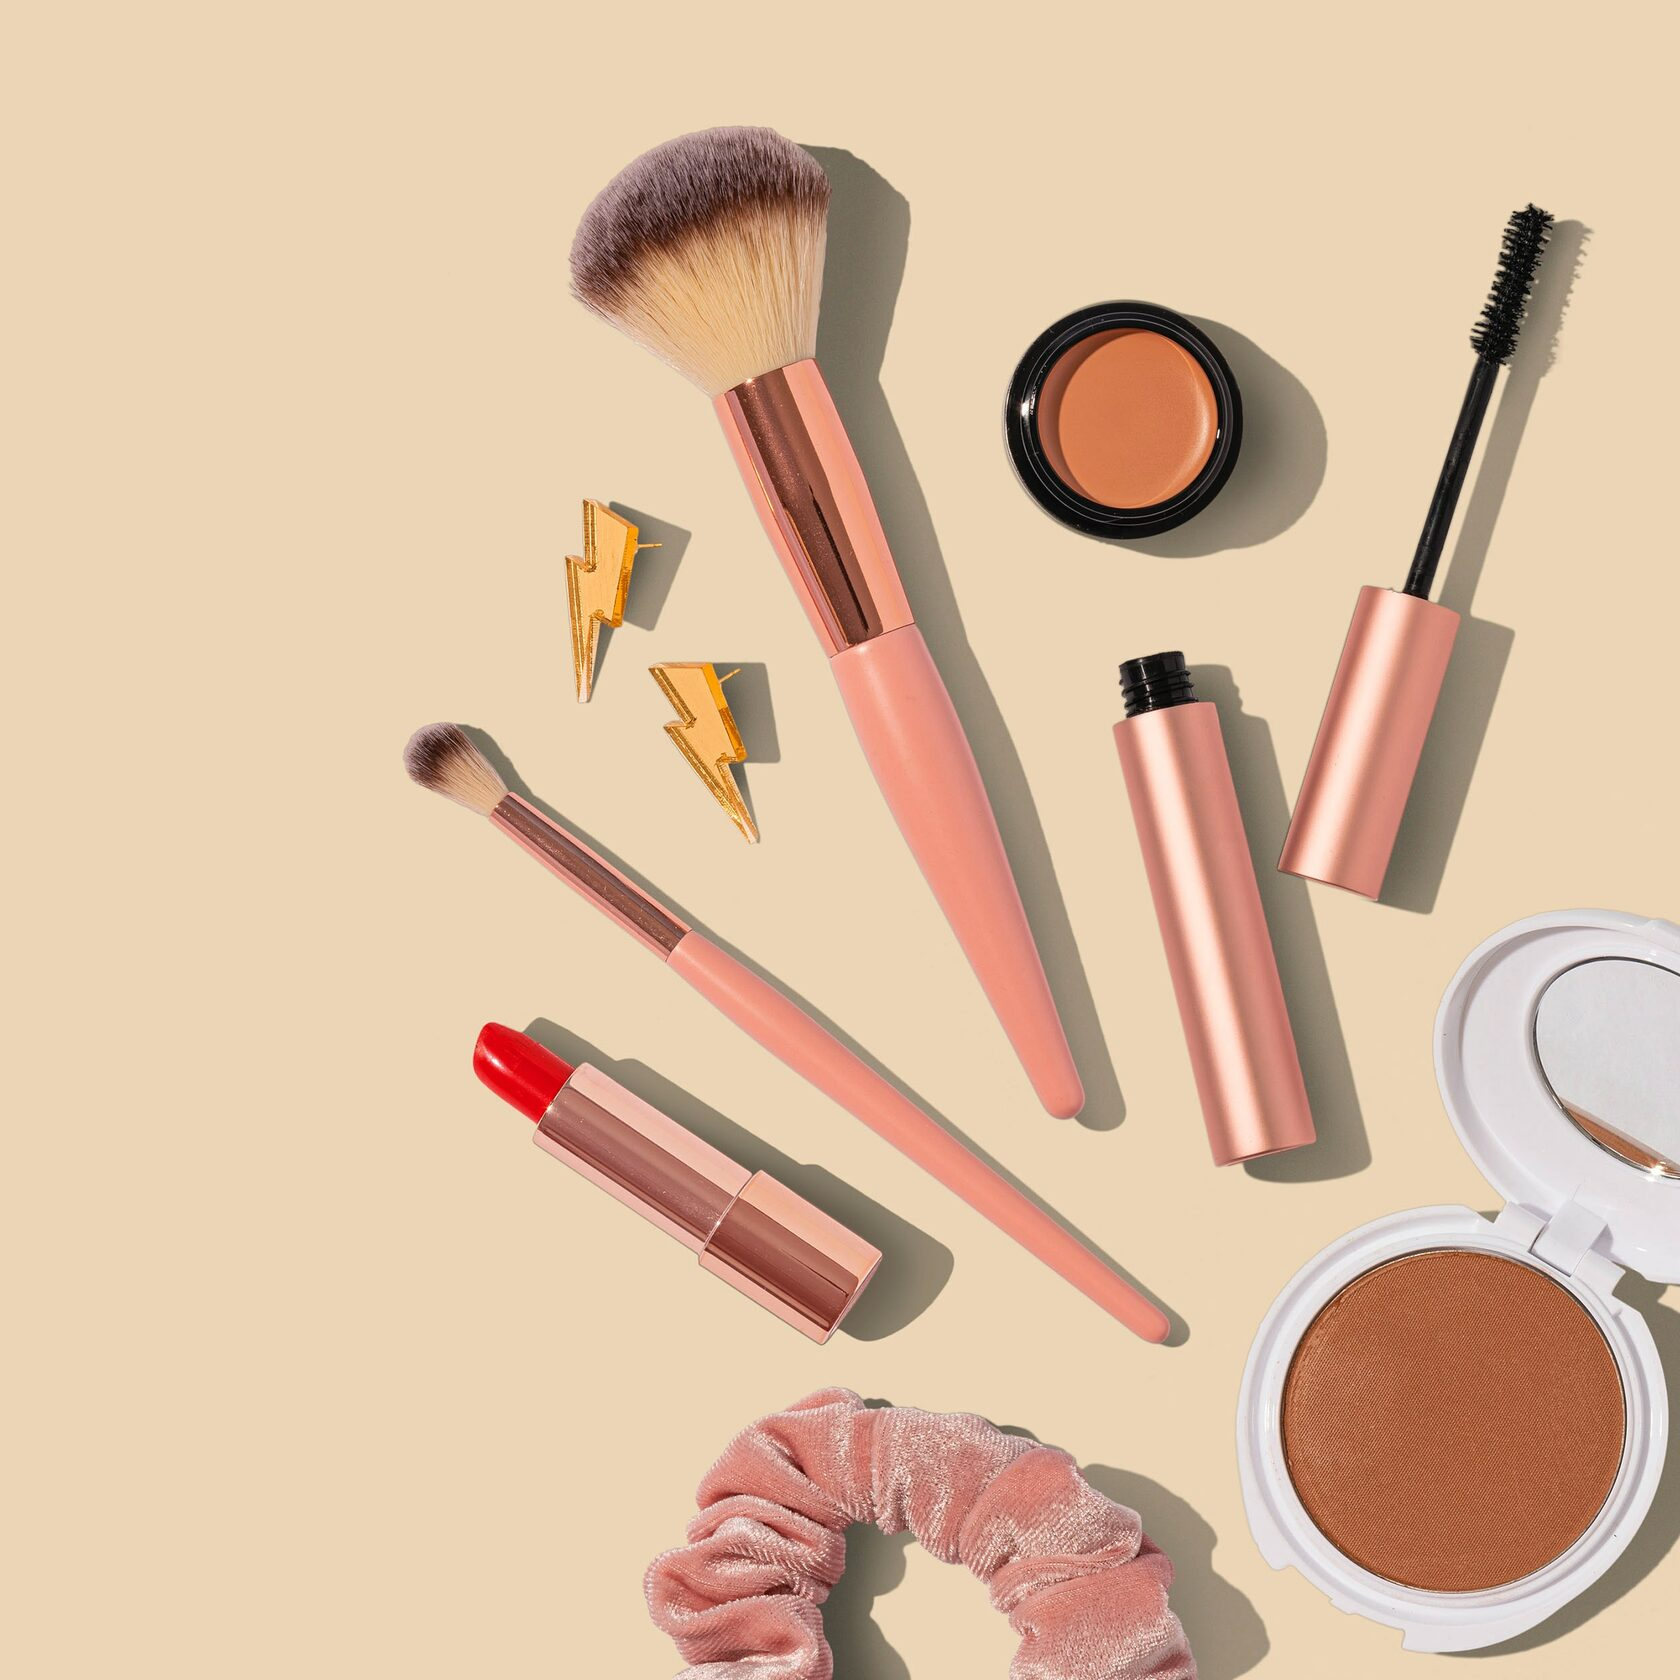 10 Easy Makeup Tips And Tricks You Add In Your Routine